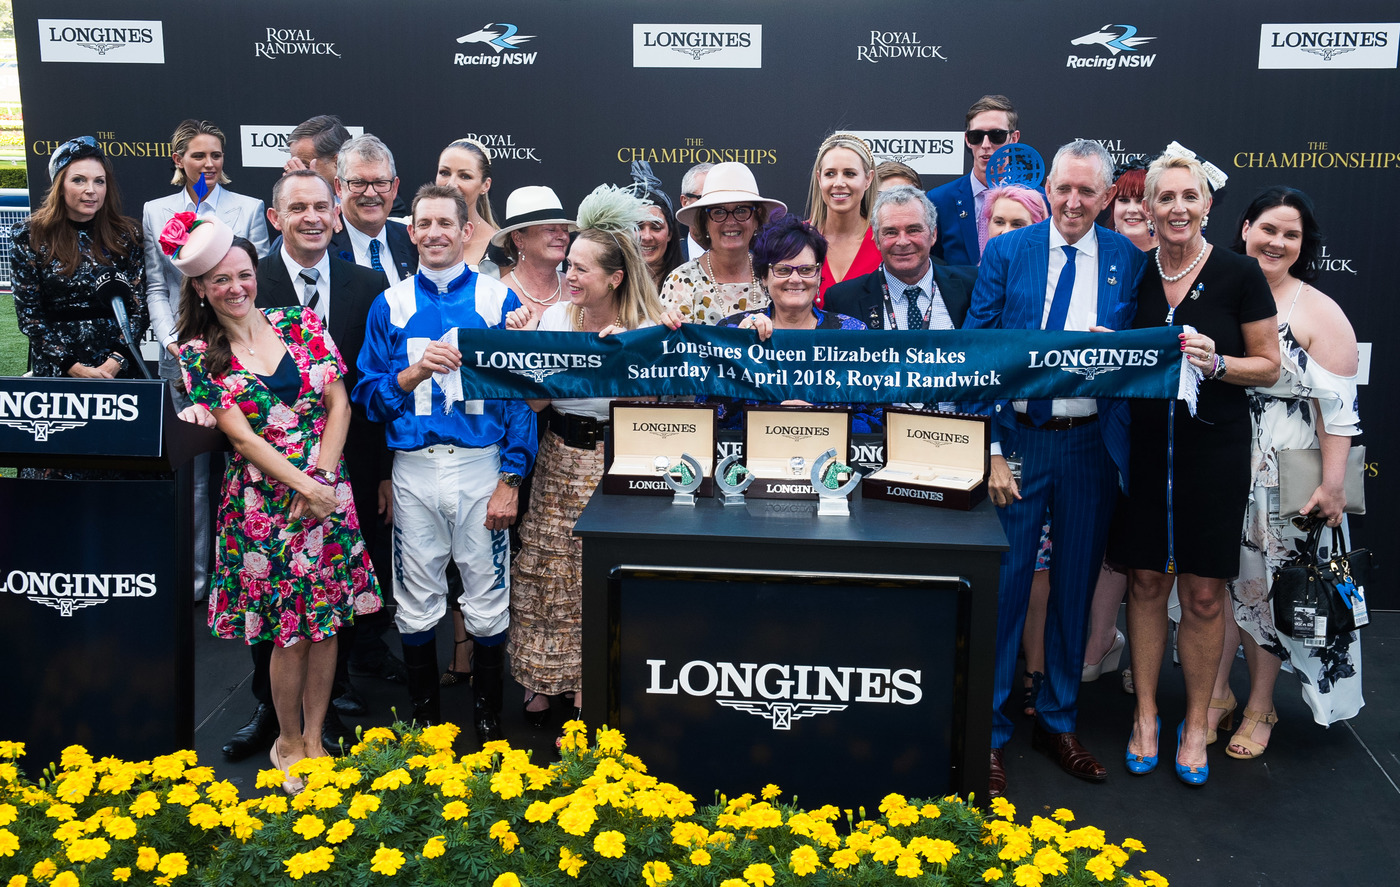 Longines Flat Racing Event: Winx claimed victory at the Longines Queen Elizabeth Stakes 11